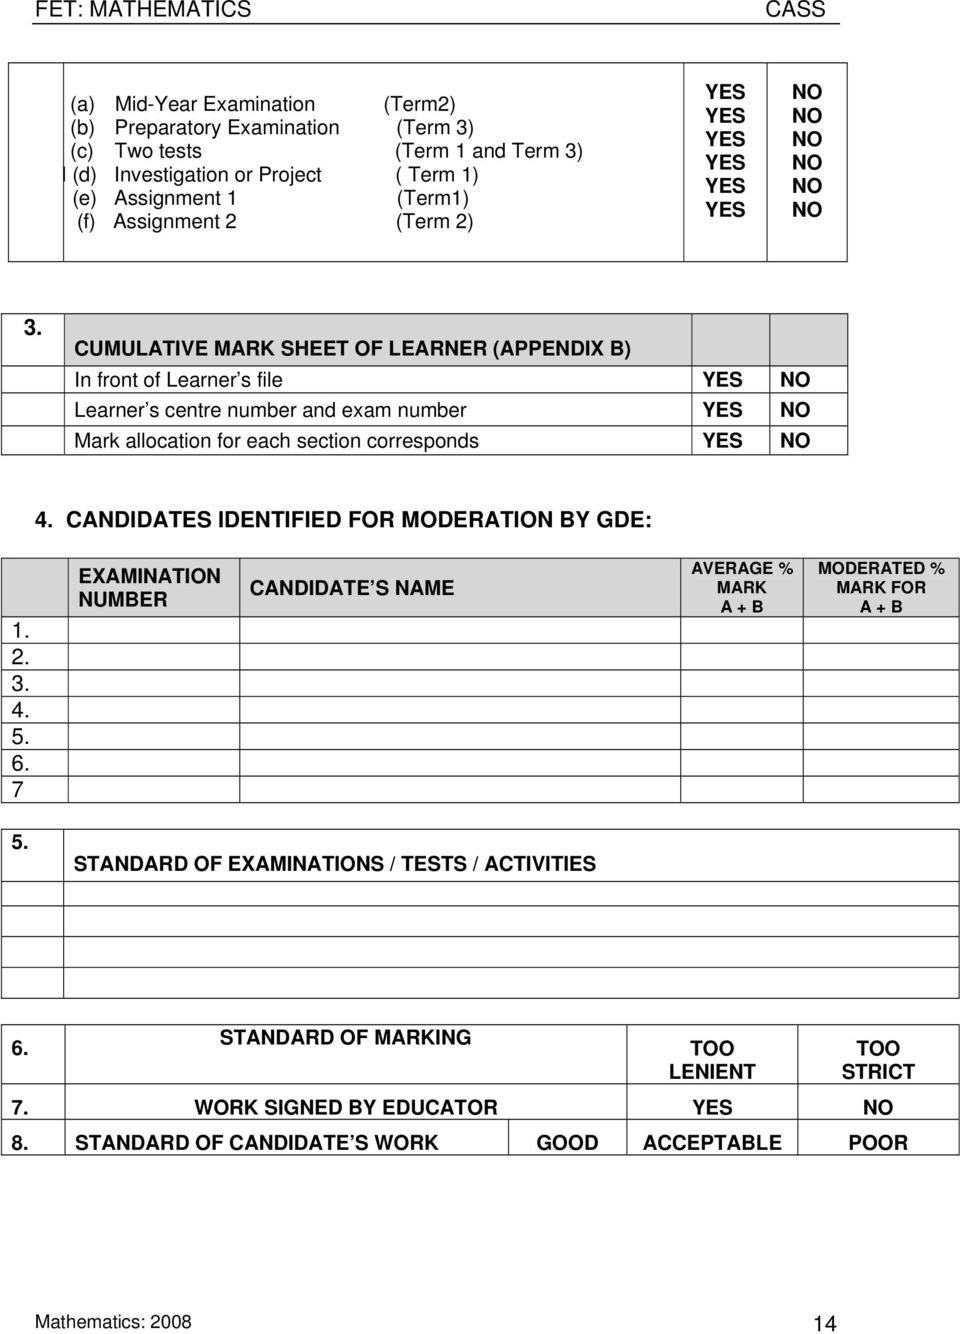 CUMULATIVE MARK SHEET OF LEARNER (APPENDIX B) In front of Learner s file YES NO Learner s centre number and exam number YES NO Mark allocation for each section corresponds YES NO 4.